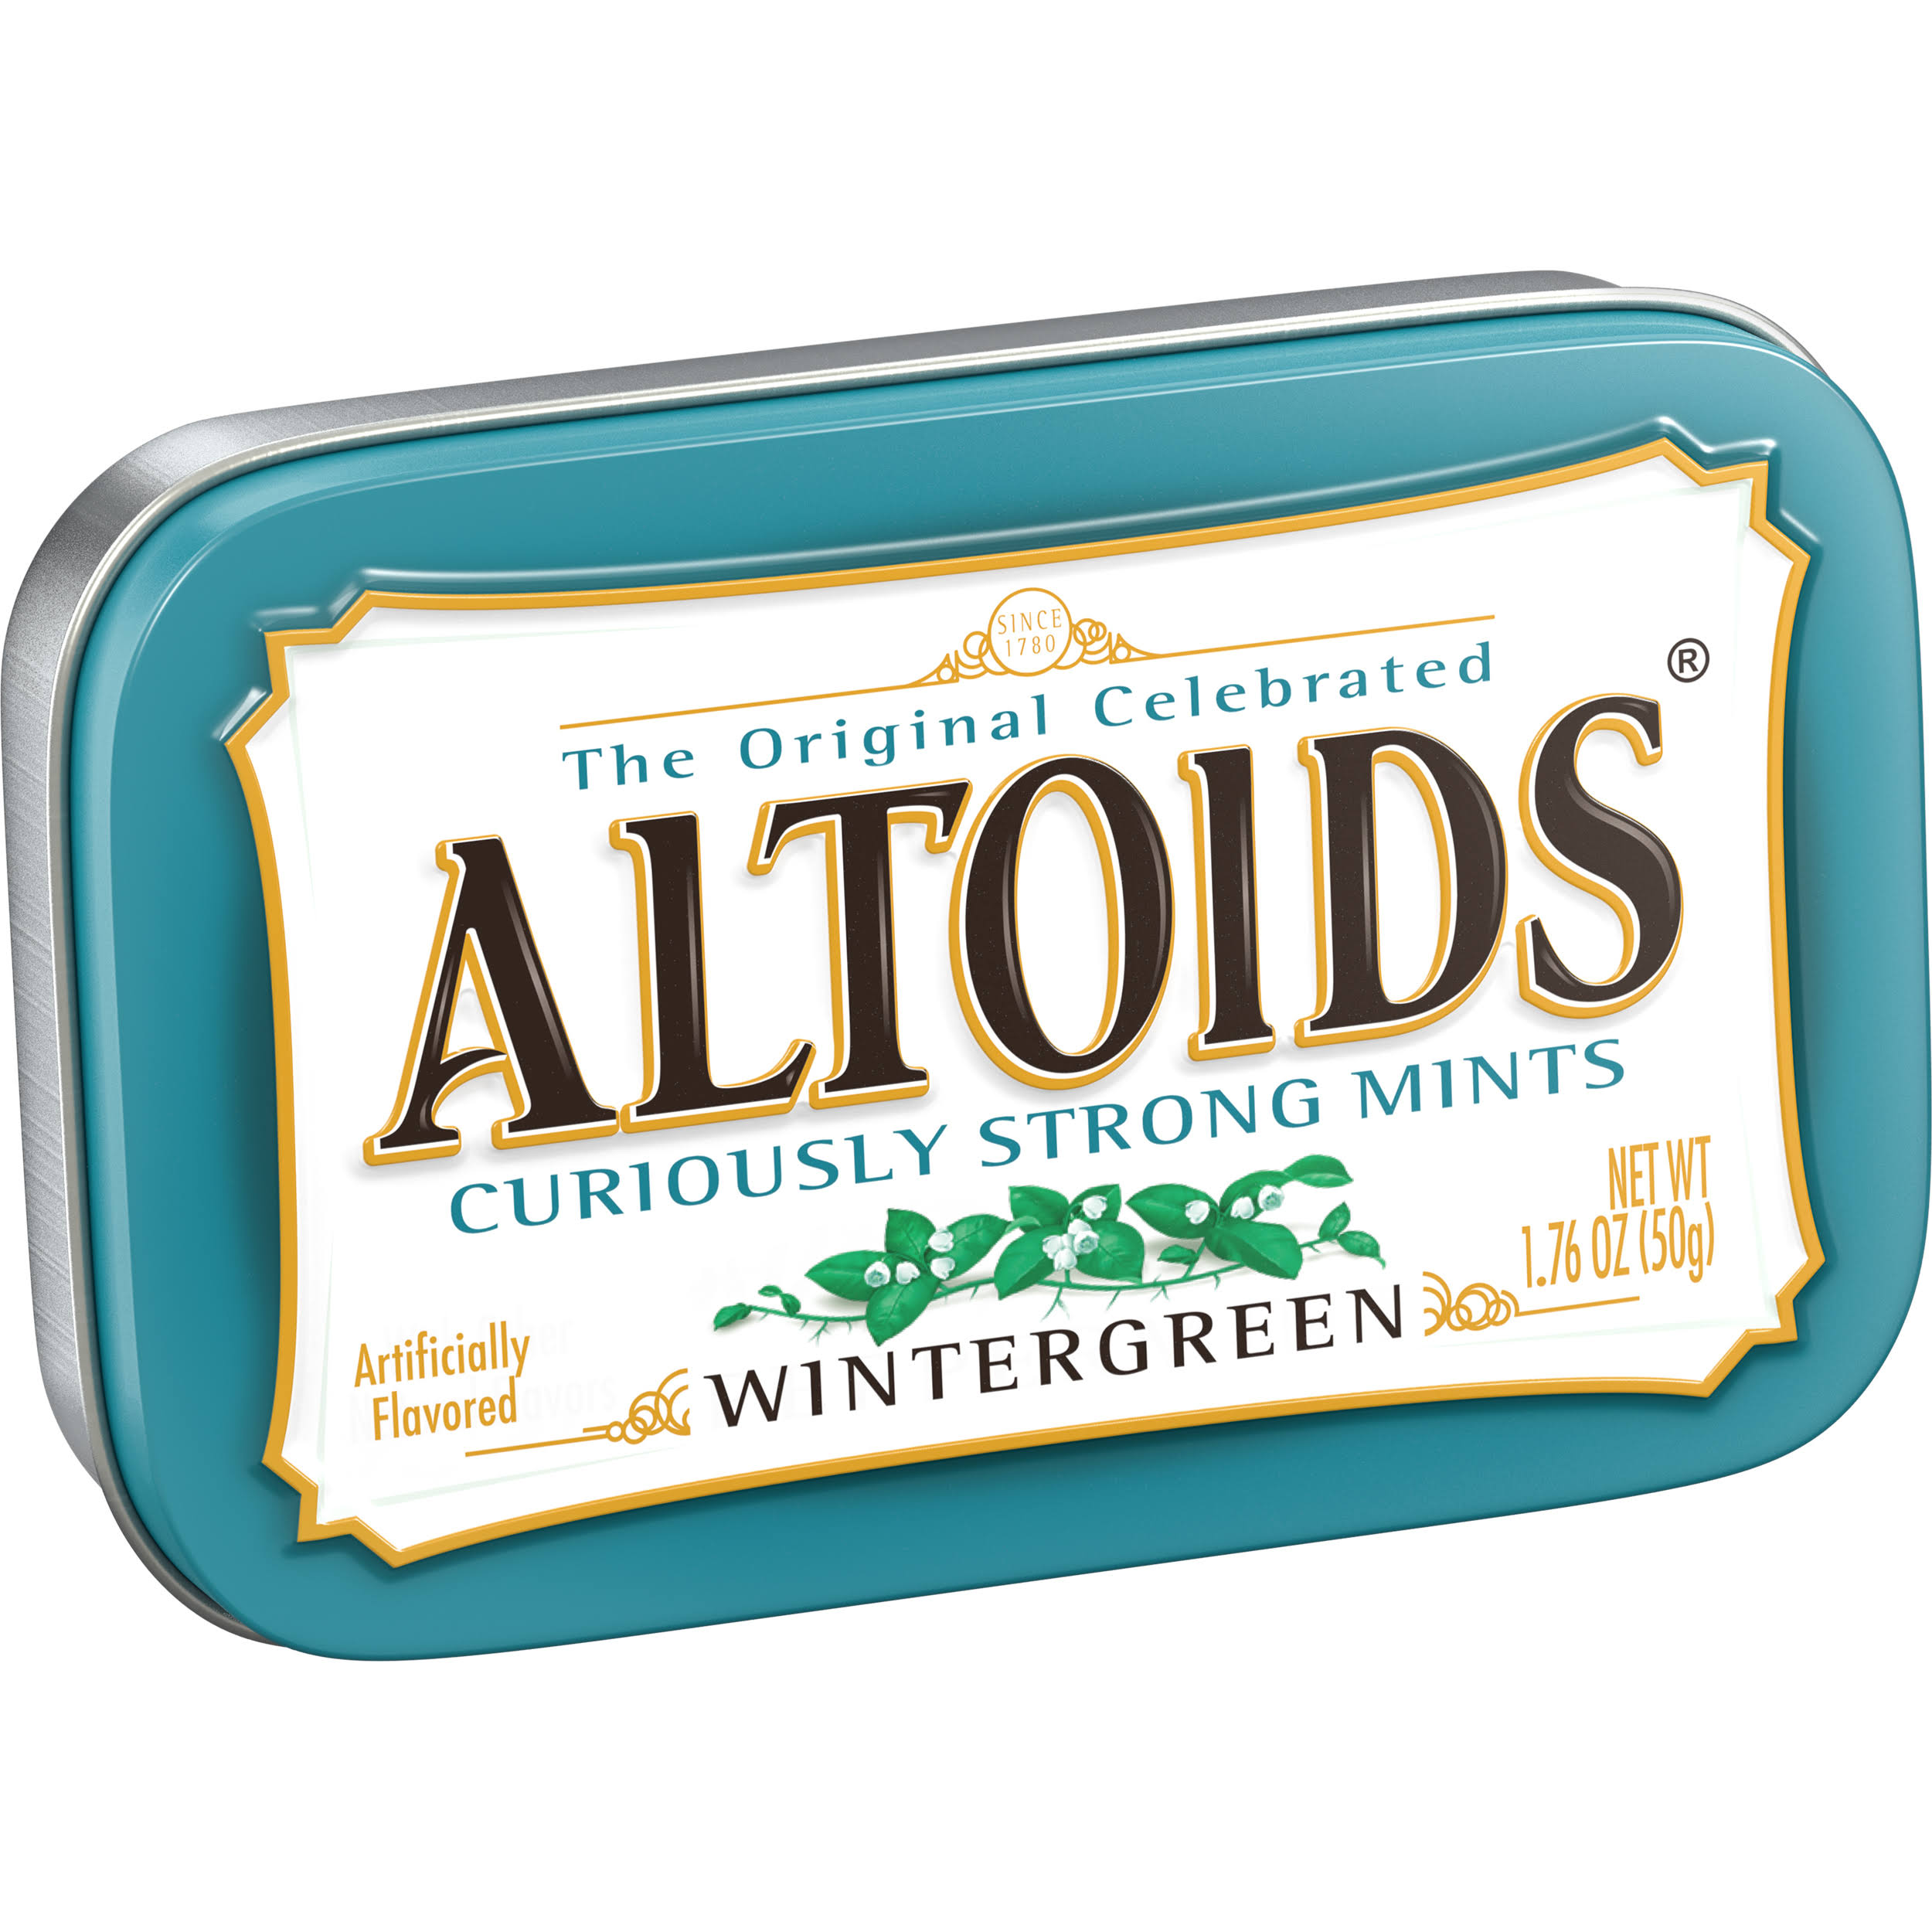 Altoids Mints - 50g, Wintergreen